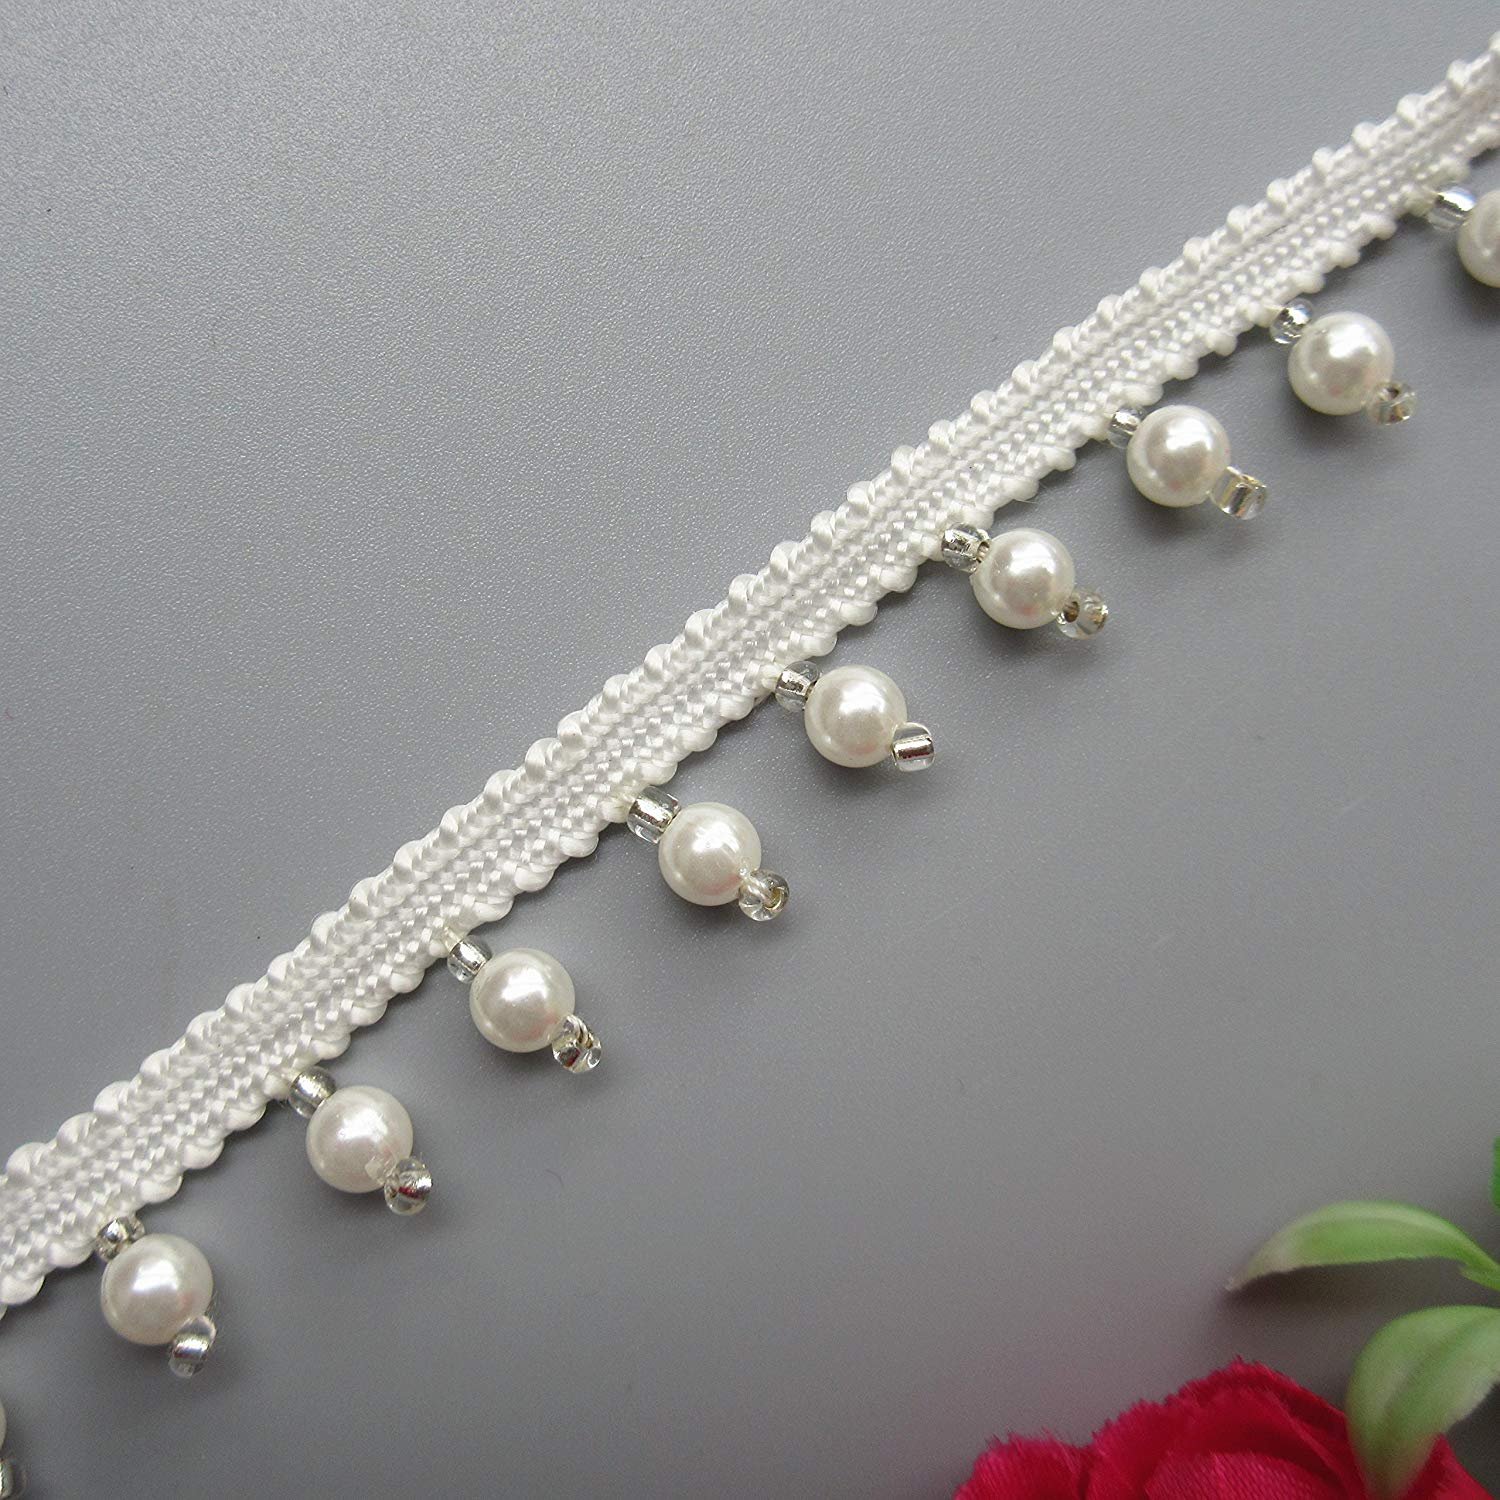 1 Yard Pearl Beaded Flower Lace Edge Trim Ribbon 3.7 cm Width Vintage Style White Trimmings Edging Fabric Embroidered Applique Sewing Craft Wedding Bridal Dress Party Clothes Hat Headband Decoration